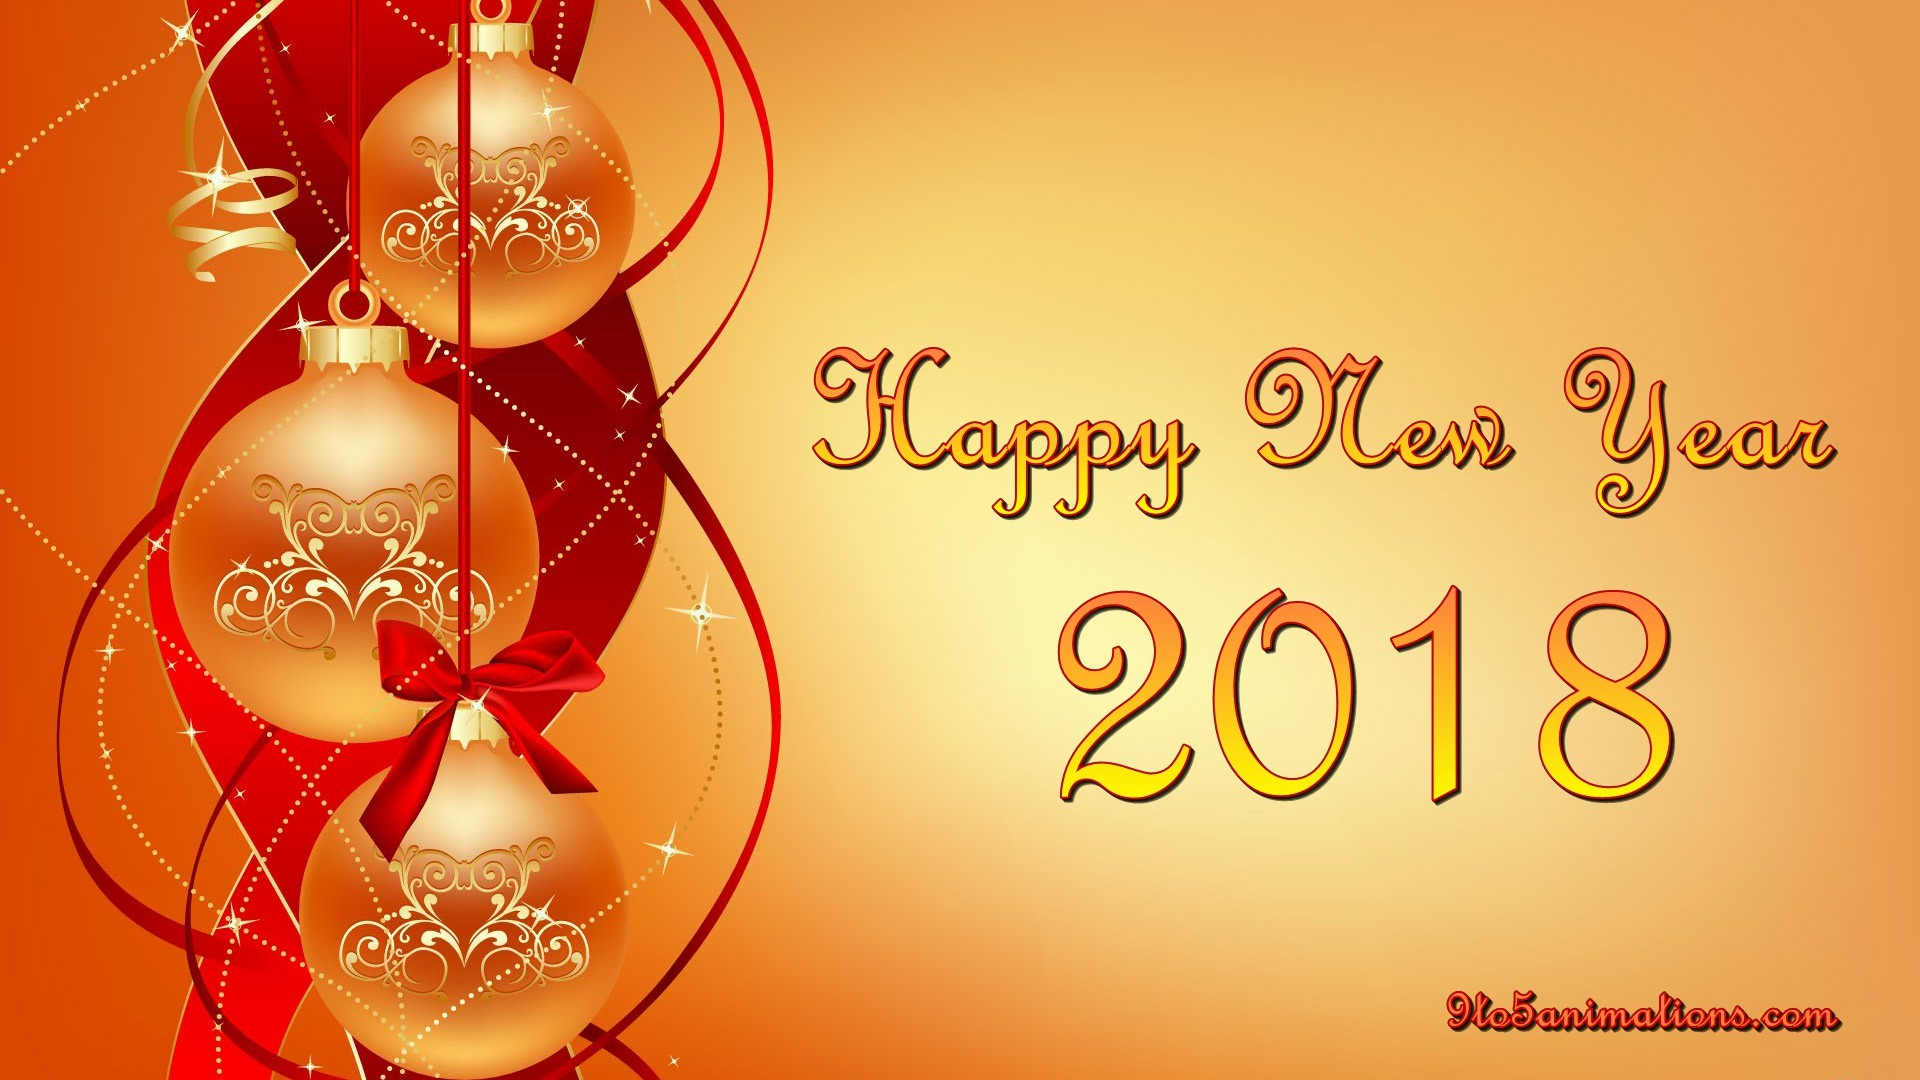 1920x1080 New Year Red Theme Wallpapers HD 9To5AnimationsCom